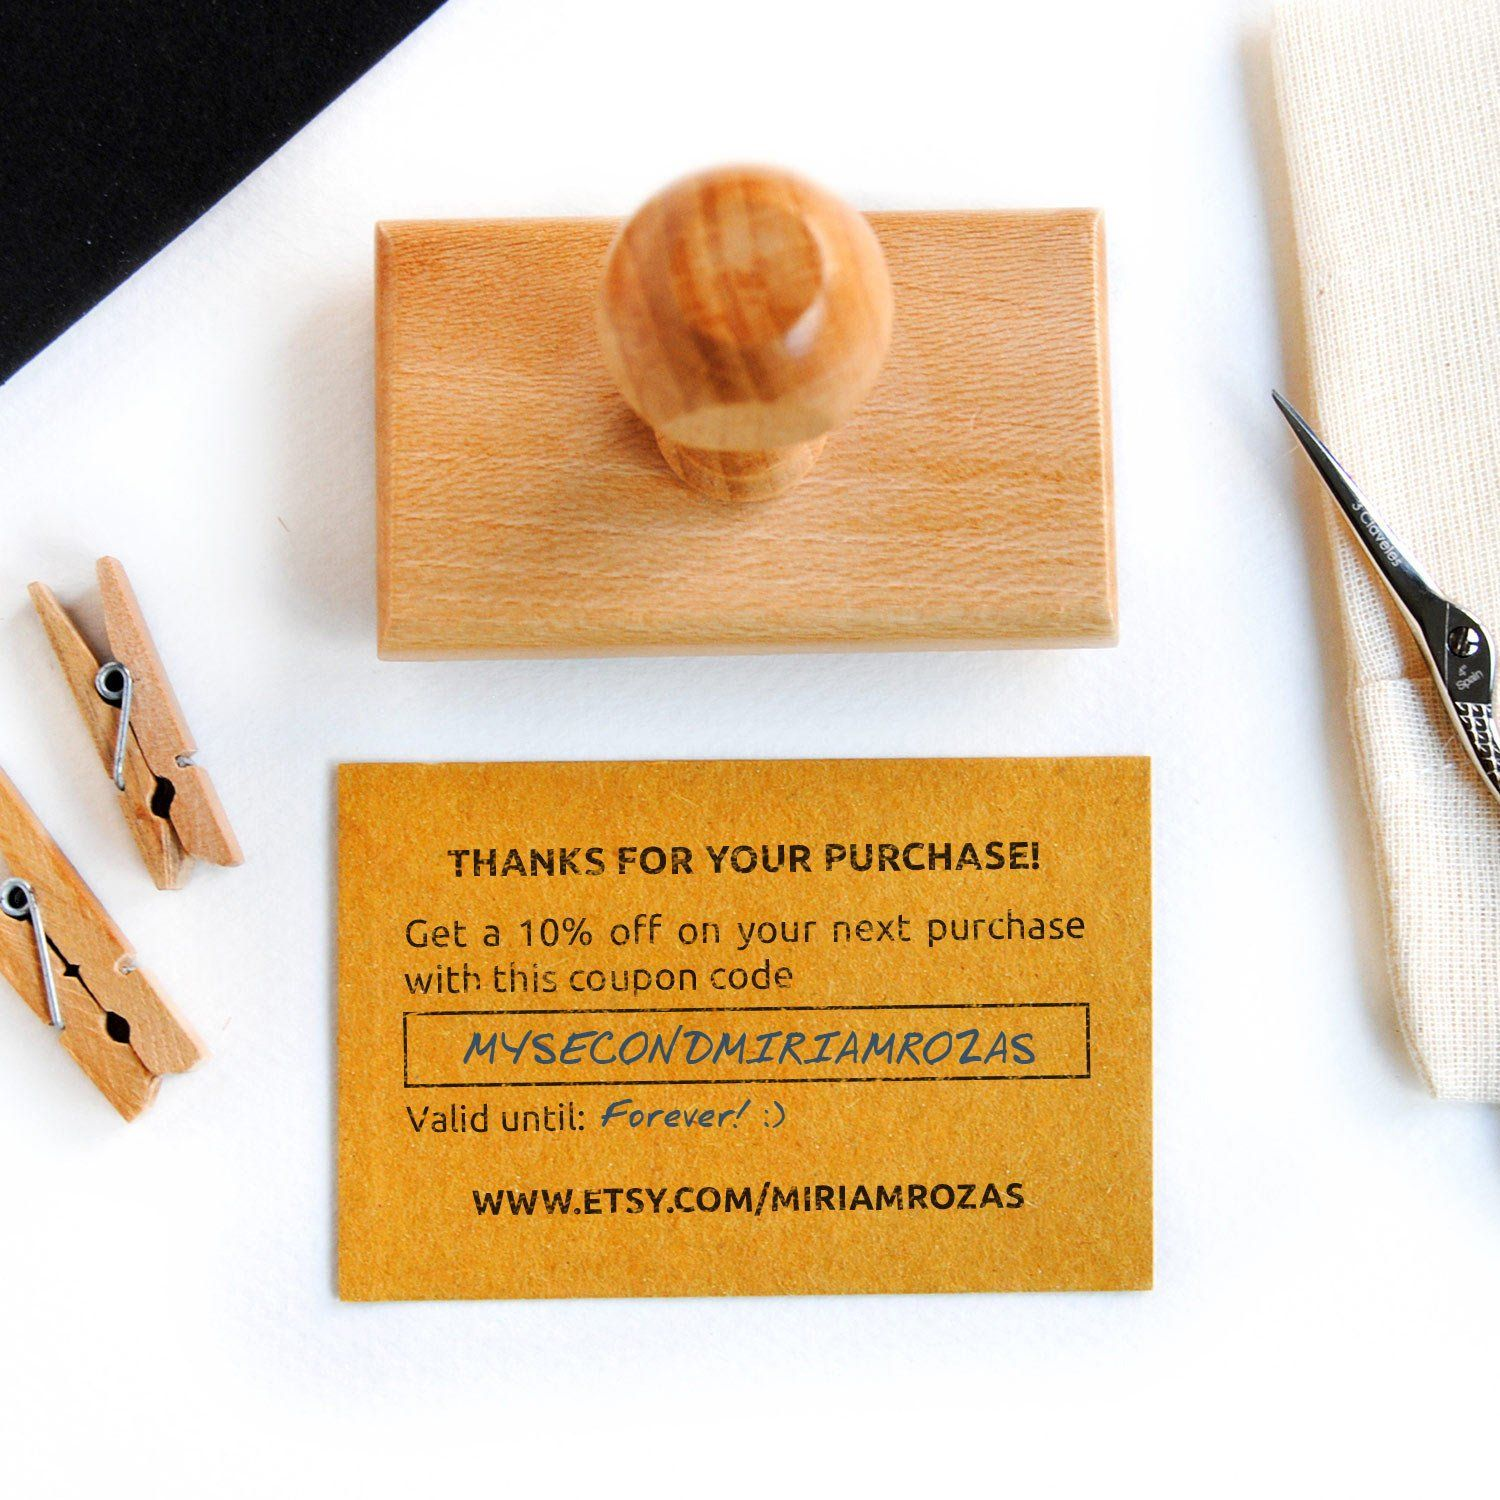 Coupon Code Stamp Custom Coupon Stamp For Shop Coupon Code Etsy In 2020 Stamped Business Cards Etsy Coupon Codes Business Stamps